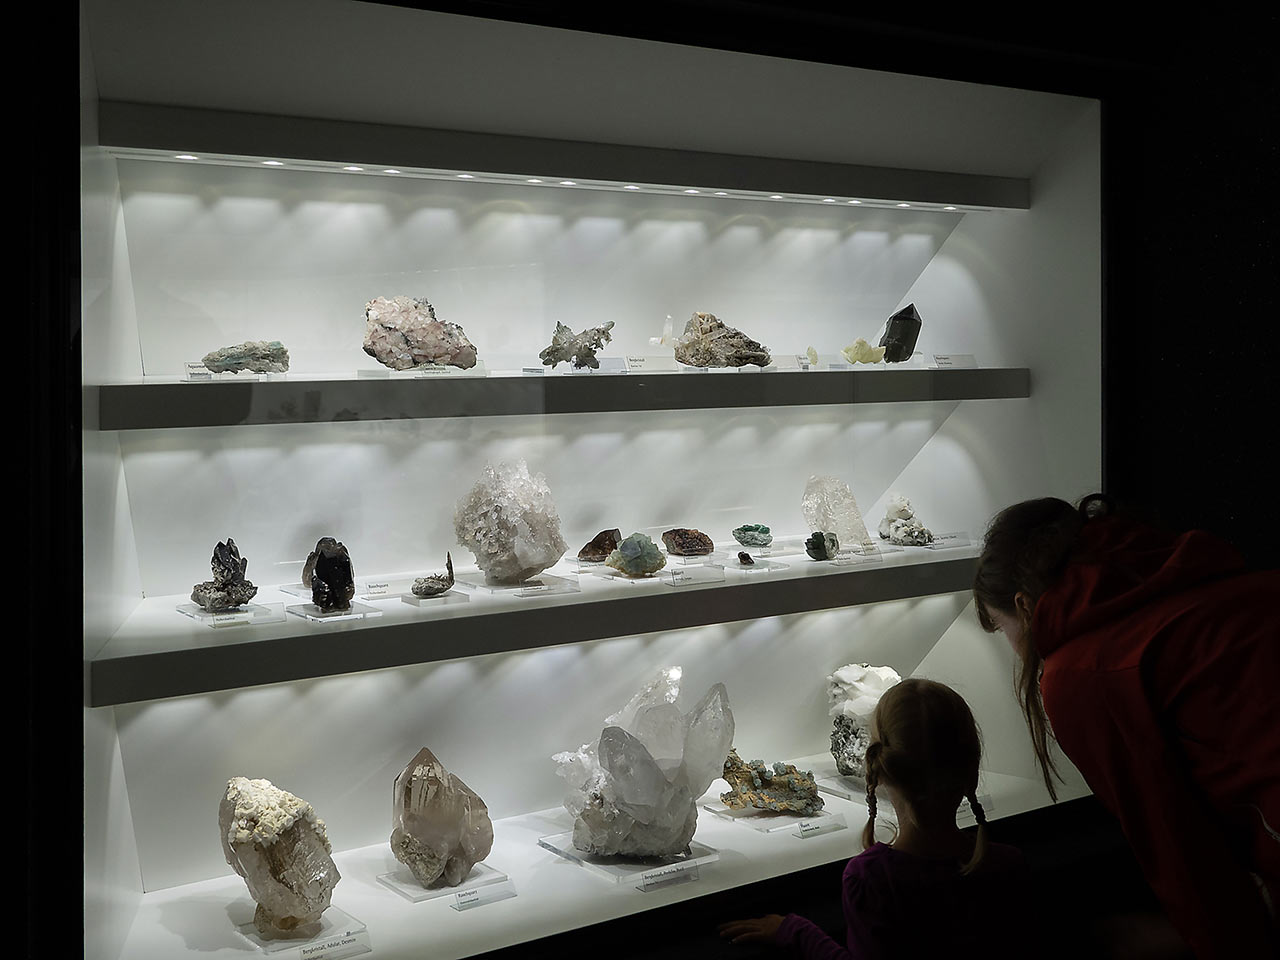 Mineral display with alpine minerals in the Bramberg museum